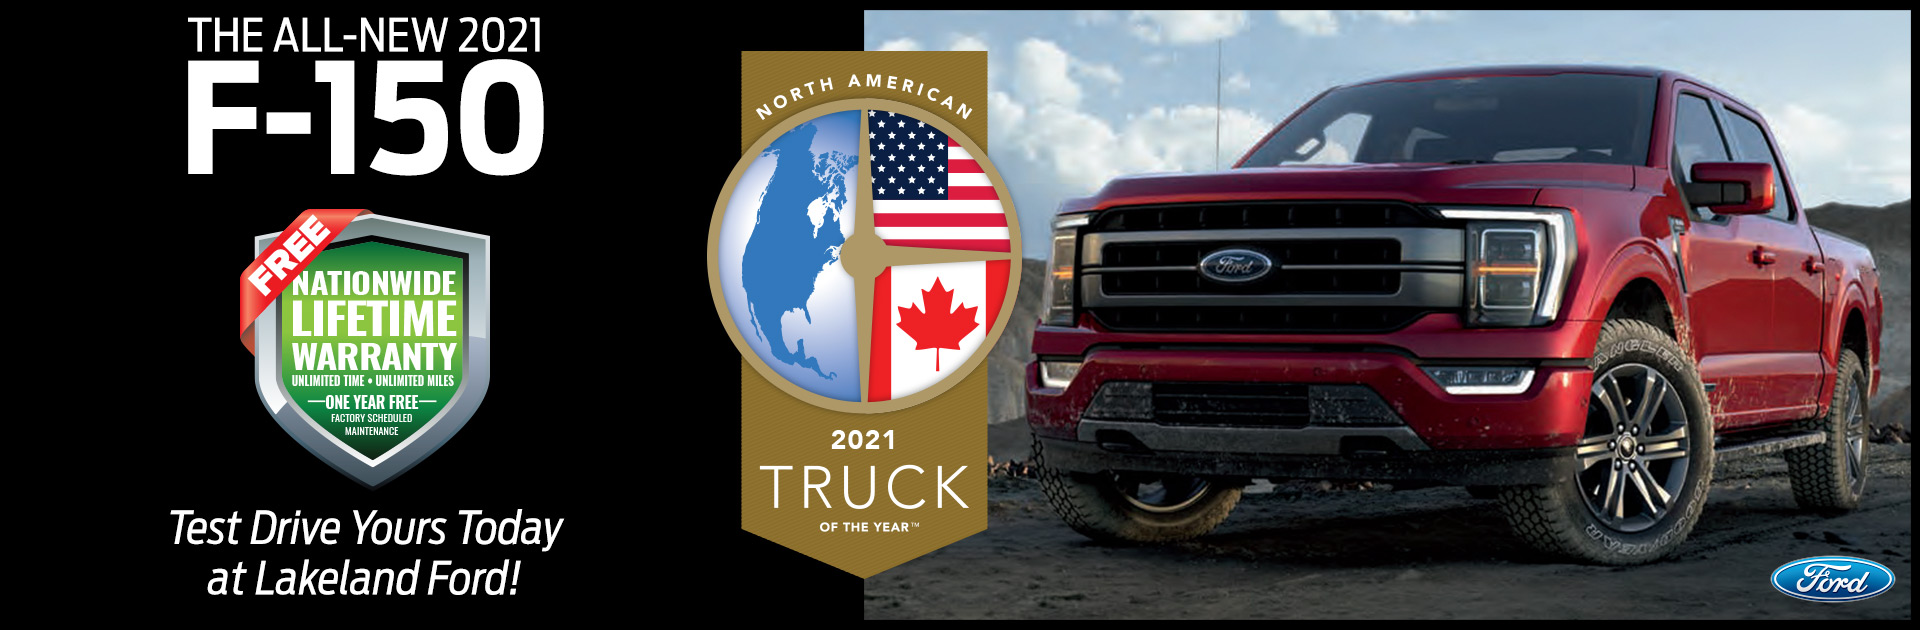 F150 - Truck of the Year